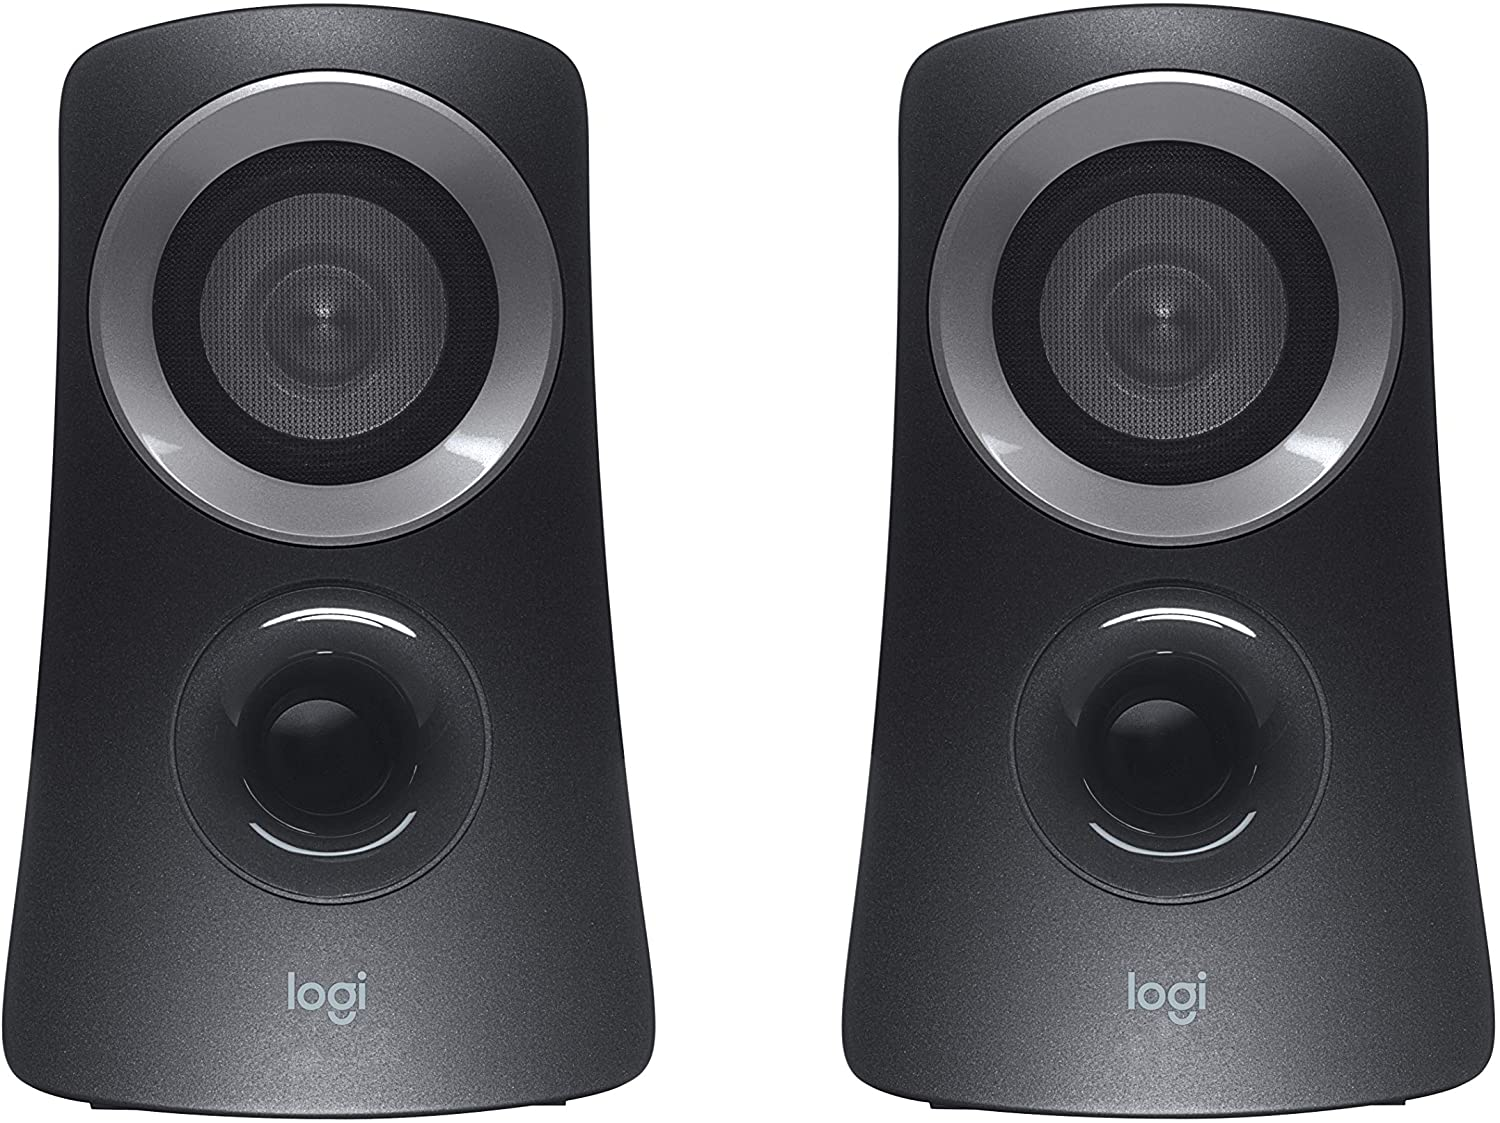 Z313 Review – 2.1 PC Speakers On A Budget